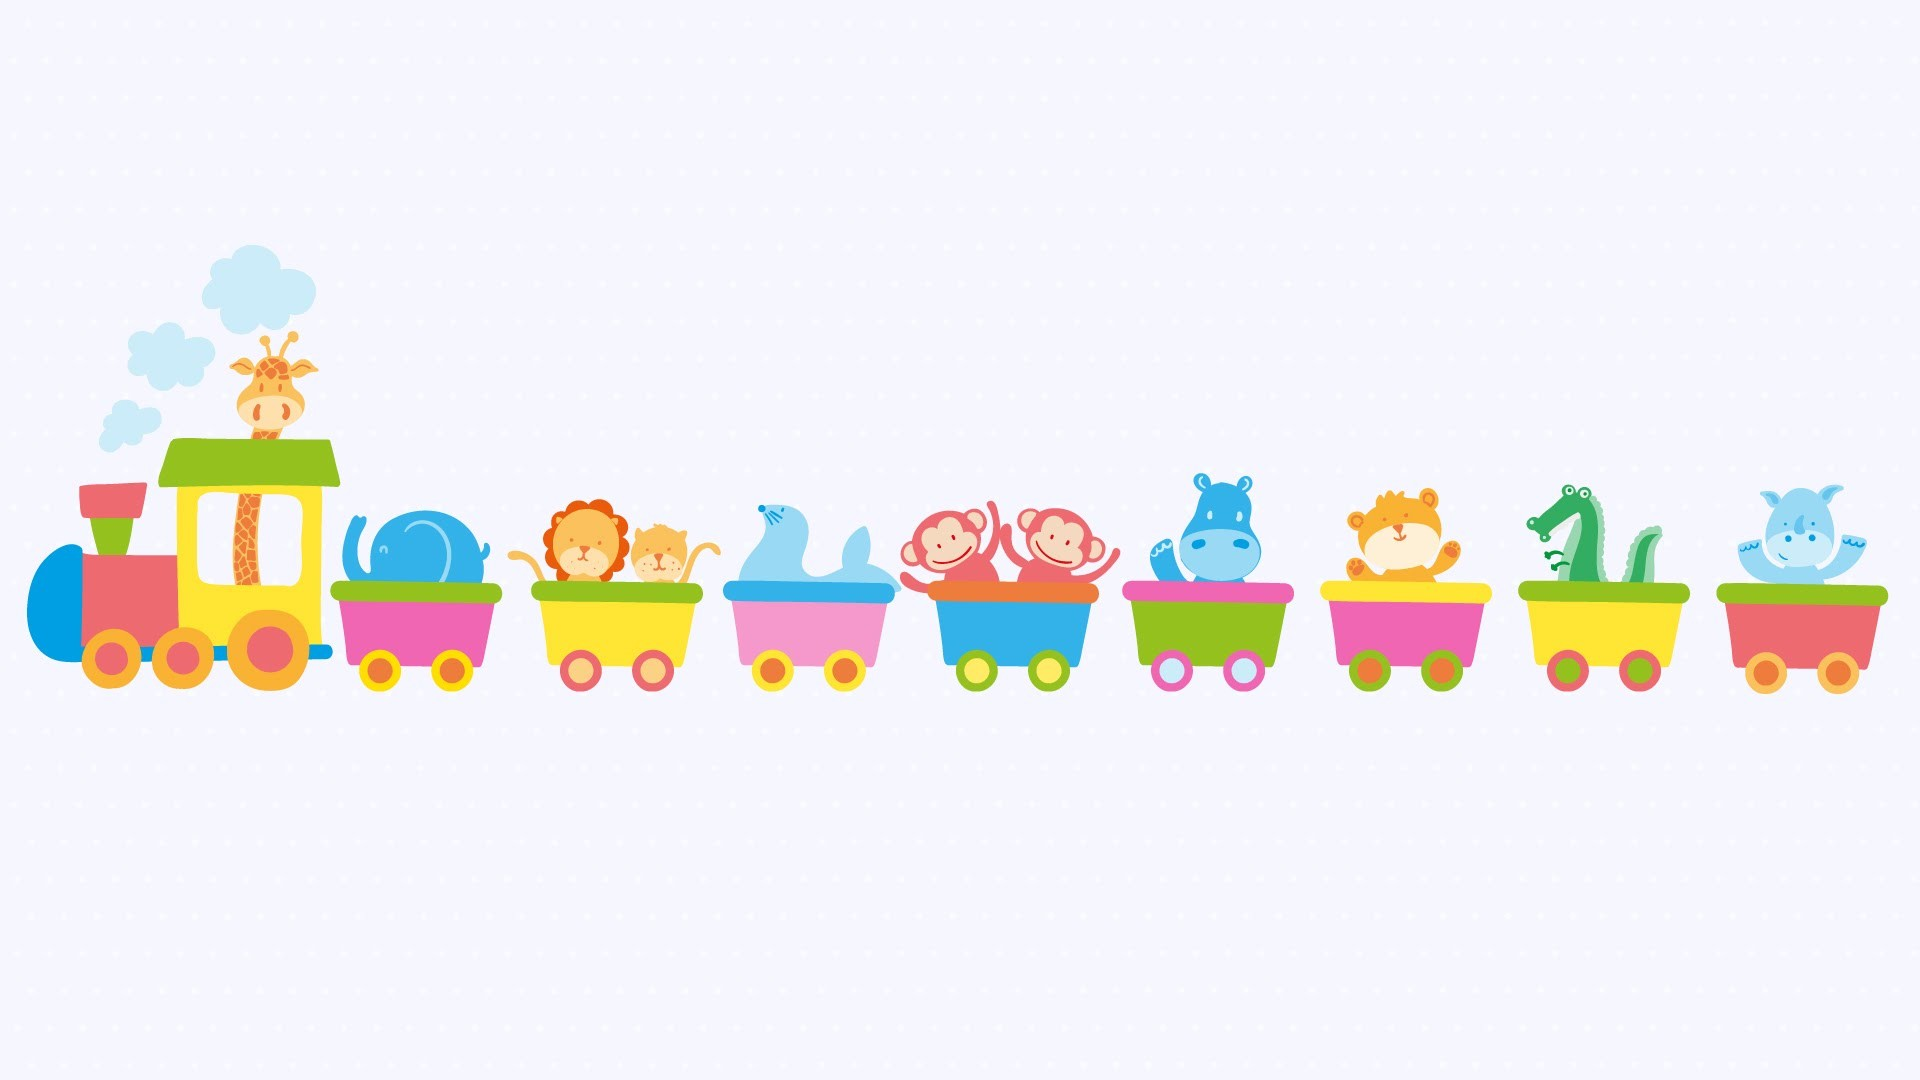 Good Wallpaper Music Kawaii - 696009-large-cute-background-pictures-1920x1080-for-android-tablet  Snapshot_905960.jpg